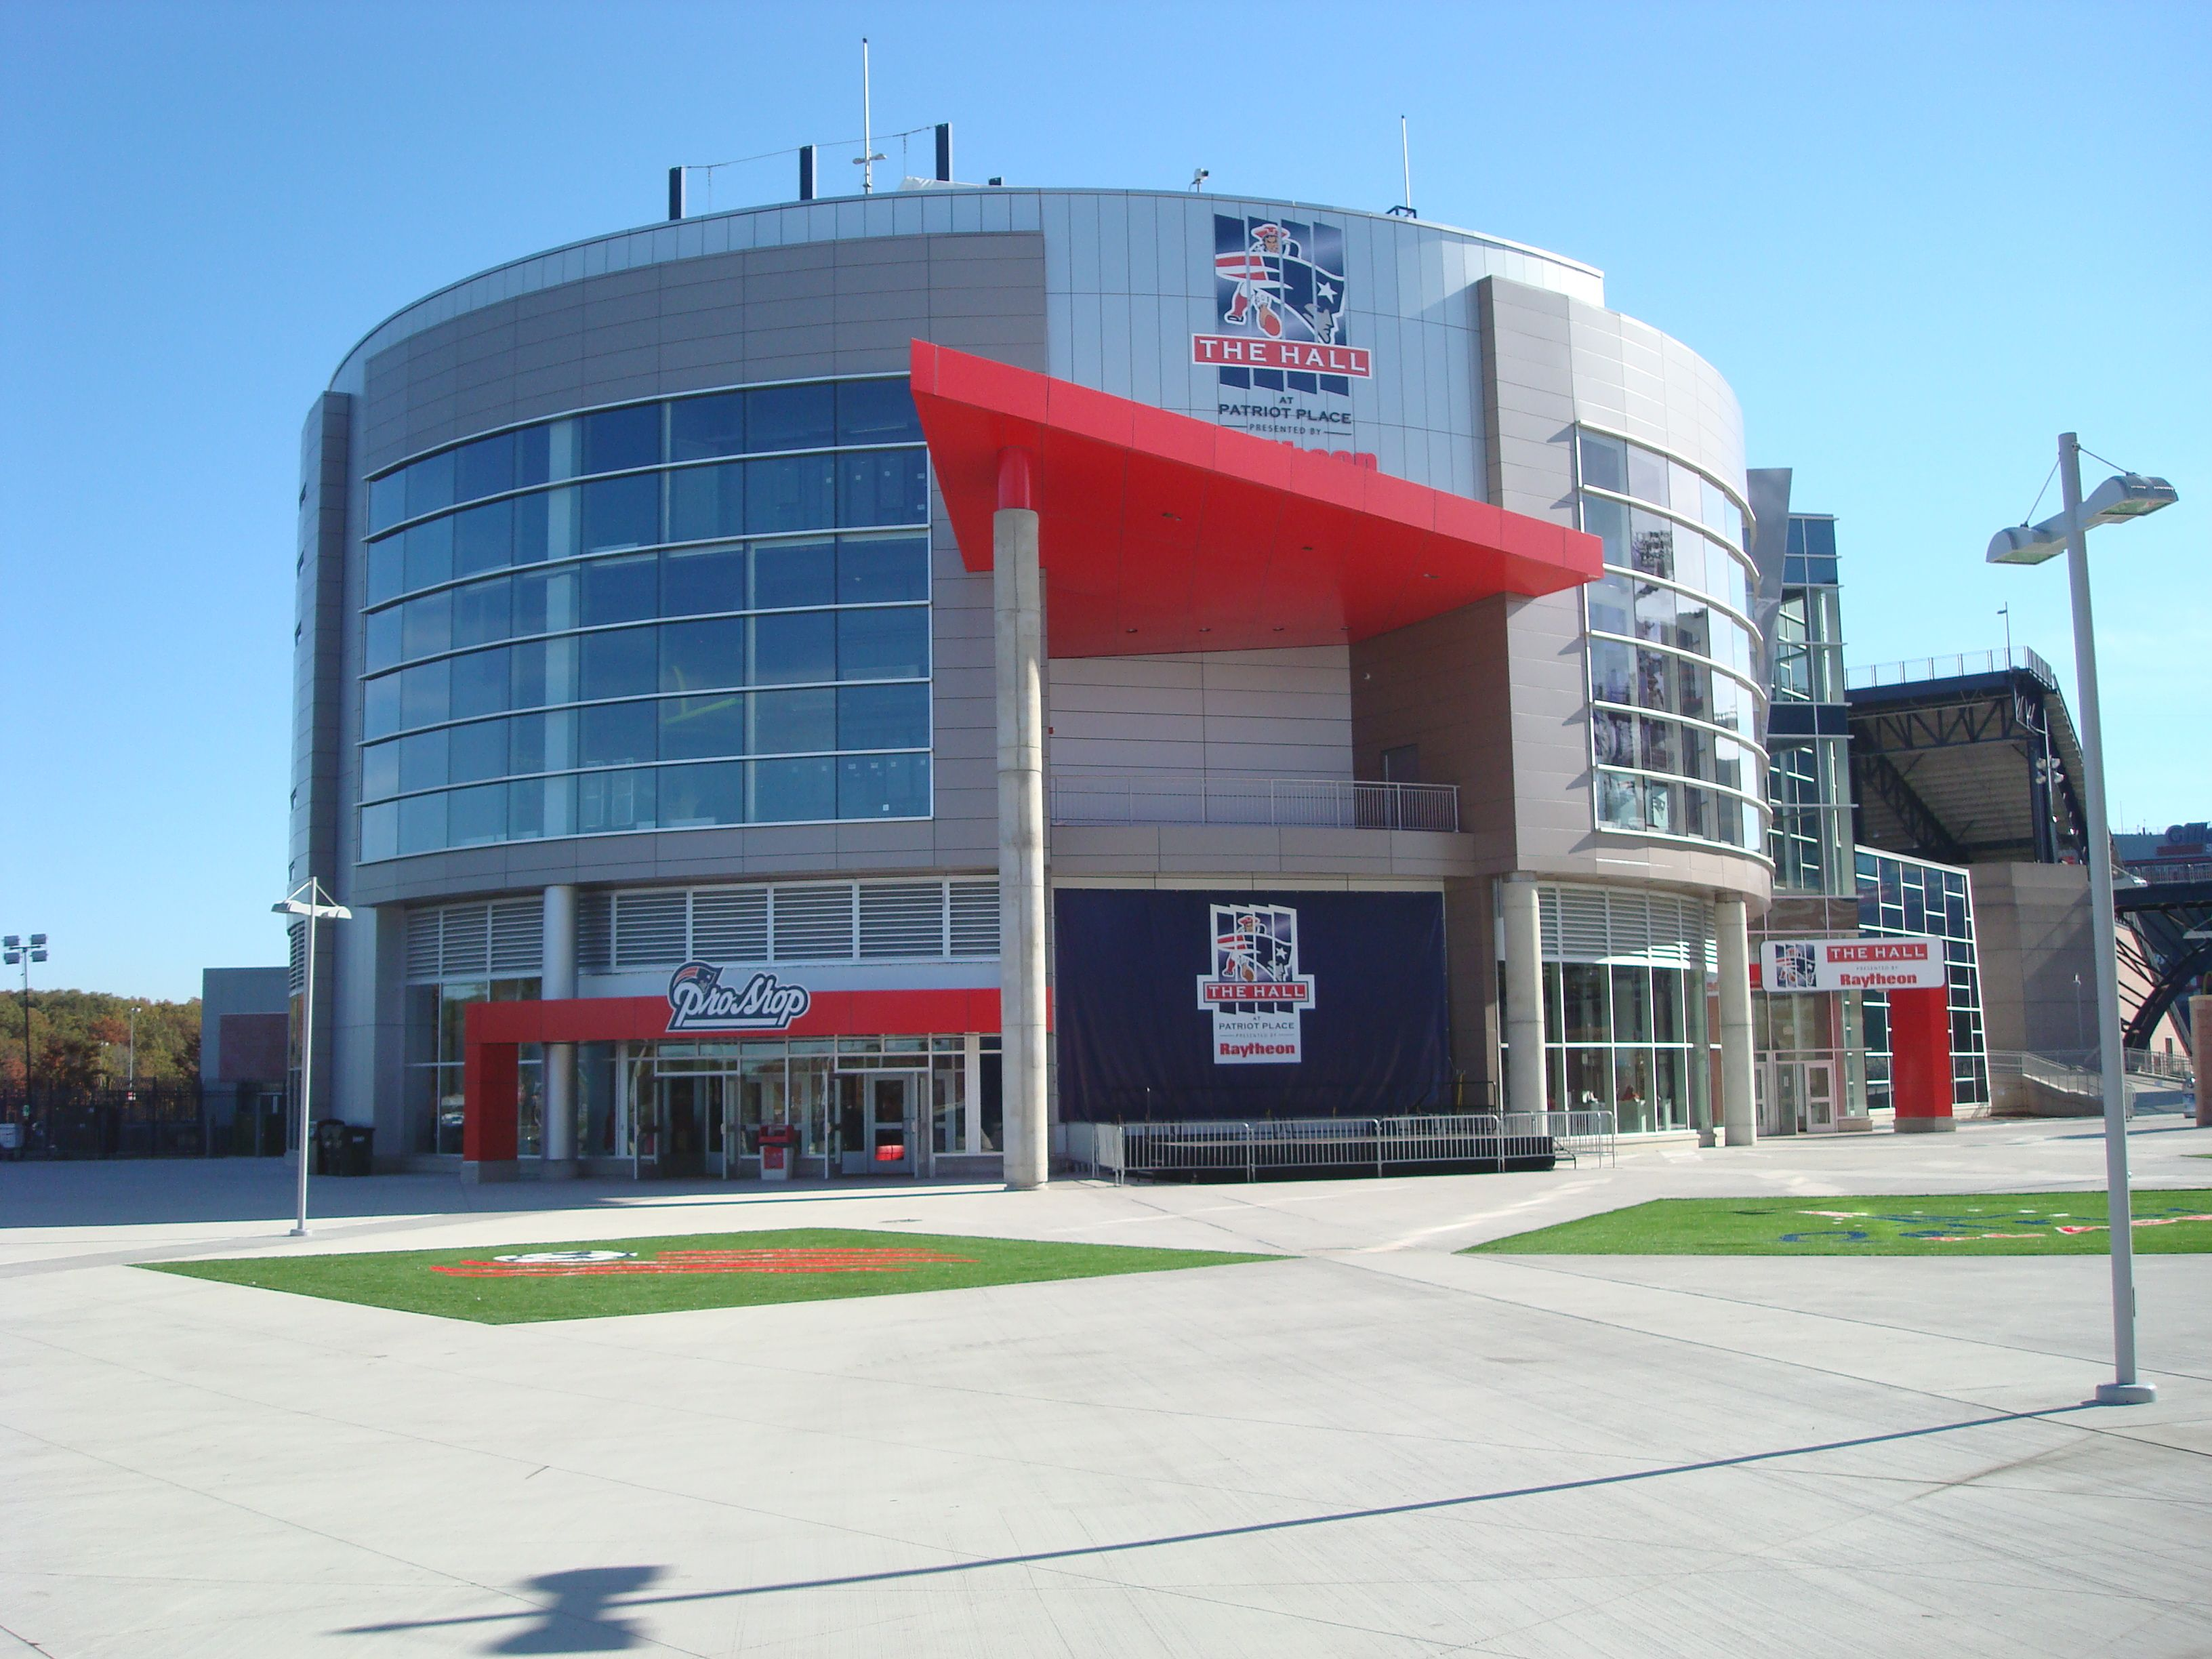 The Hall At Patriot Place Vacation Places Places New England Revolution